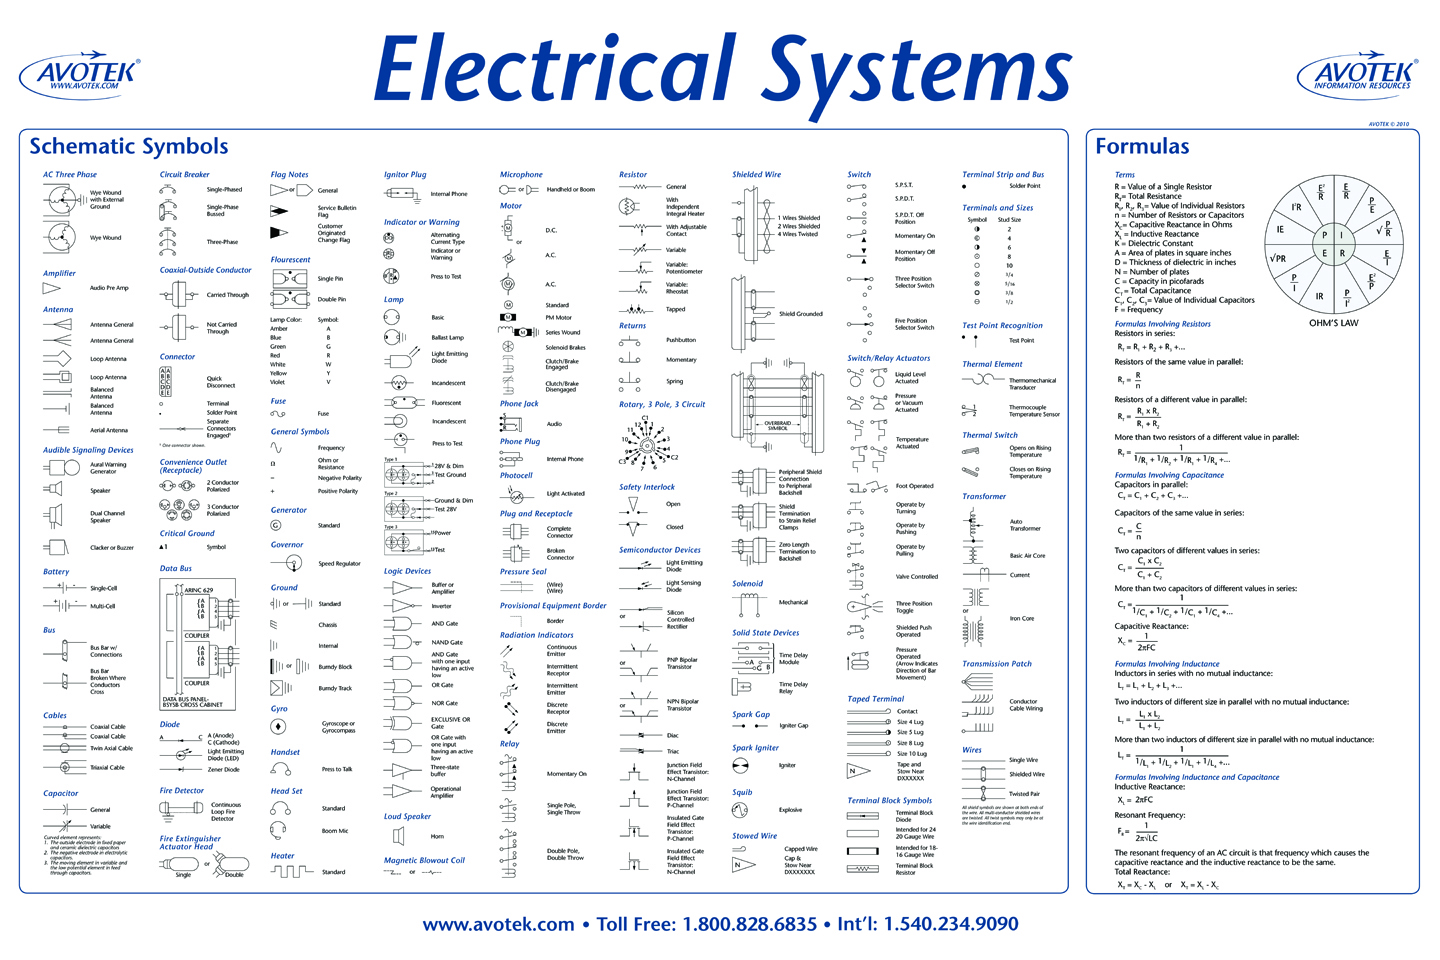 Electrical Wiring Diagrams Symbols : Classroom poster electrical systems avotek